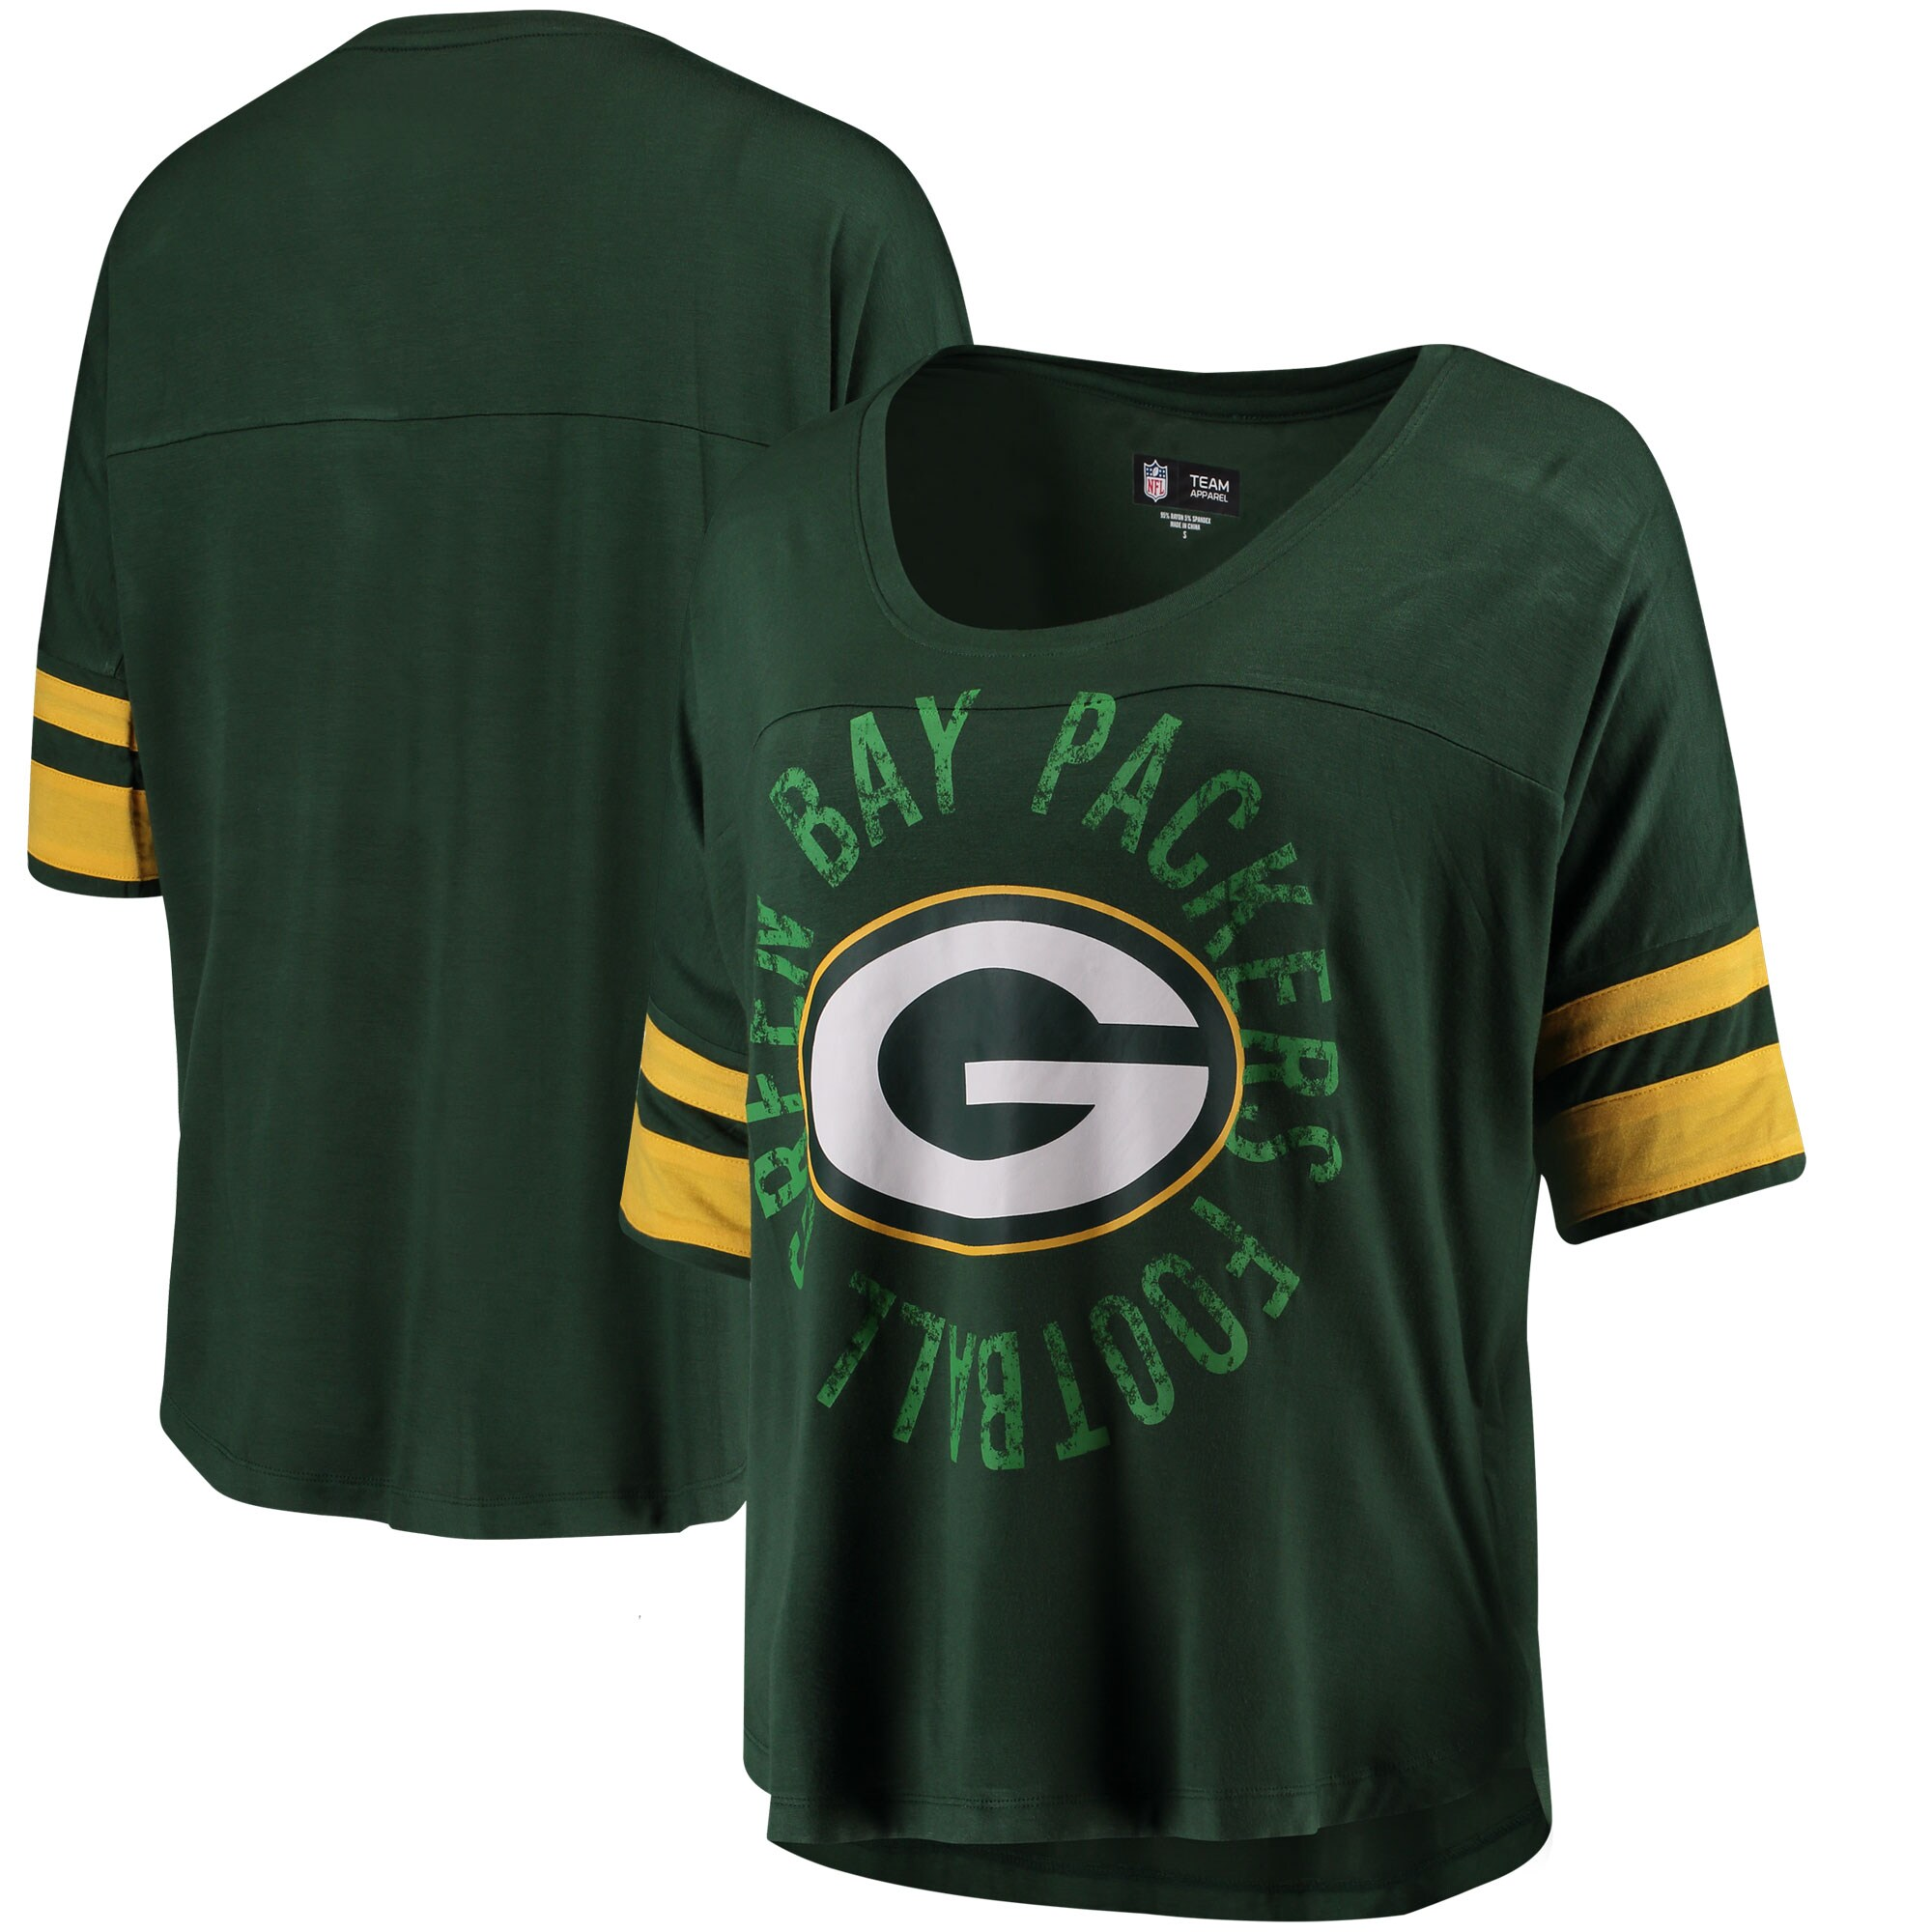 Green Bay Packers 5th & Ocean by New Era Women's Novelty Dolman Sleeve Scoop Neck T-Shirt - Green